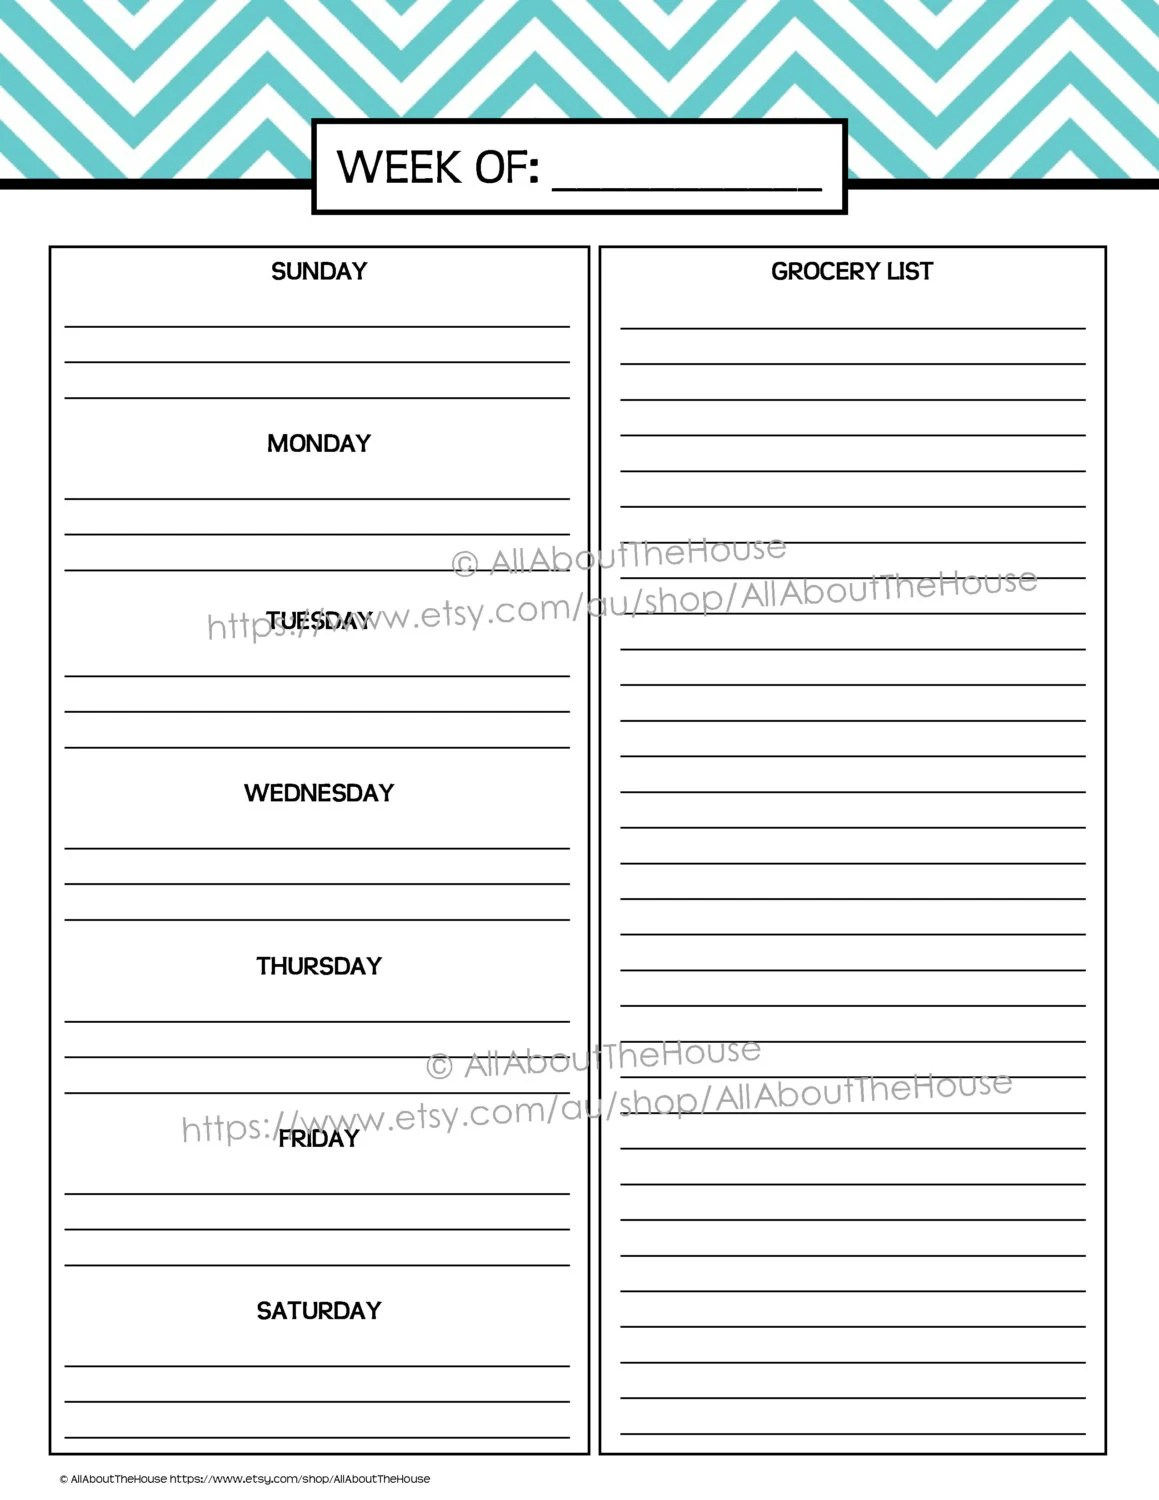 meal planner template pdf - Romeolandinez - Printable Weekly Menu Planner With Grocery List